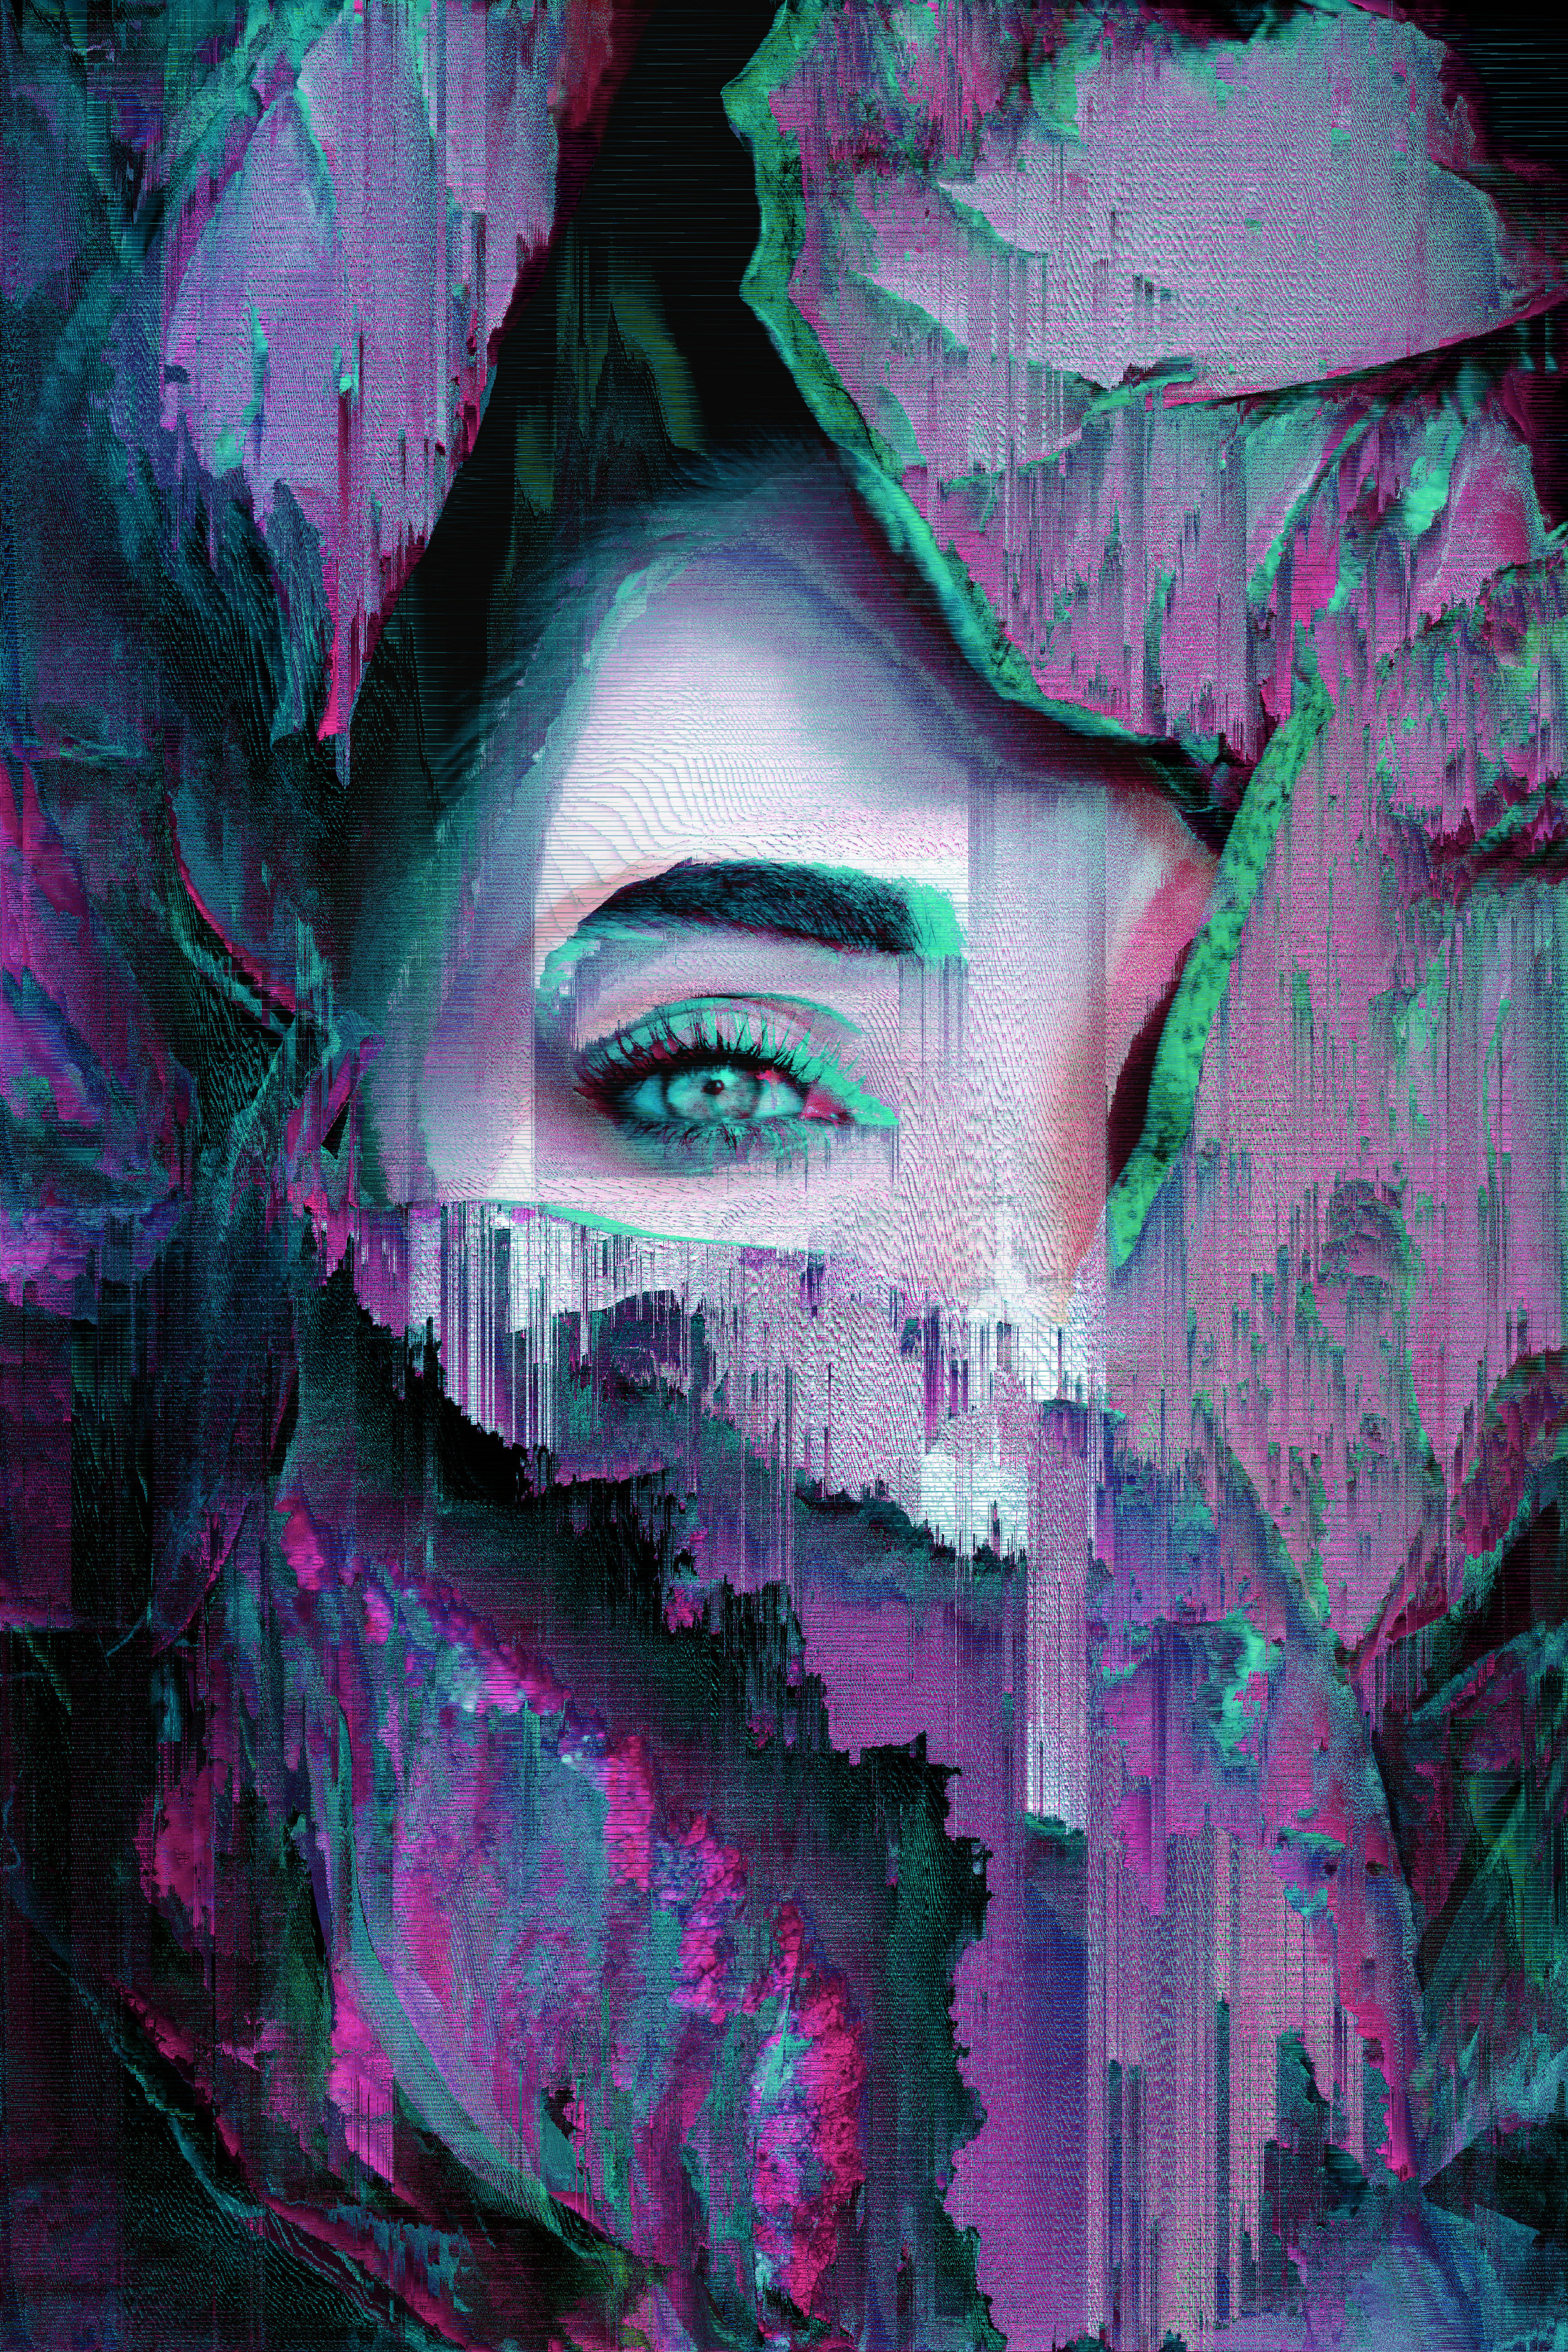 anaglych_24